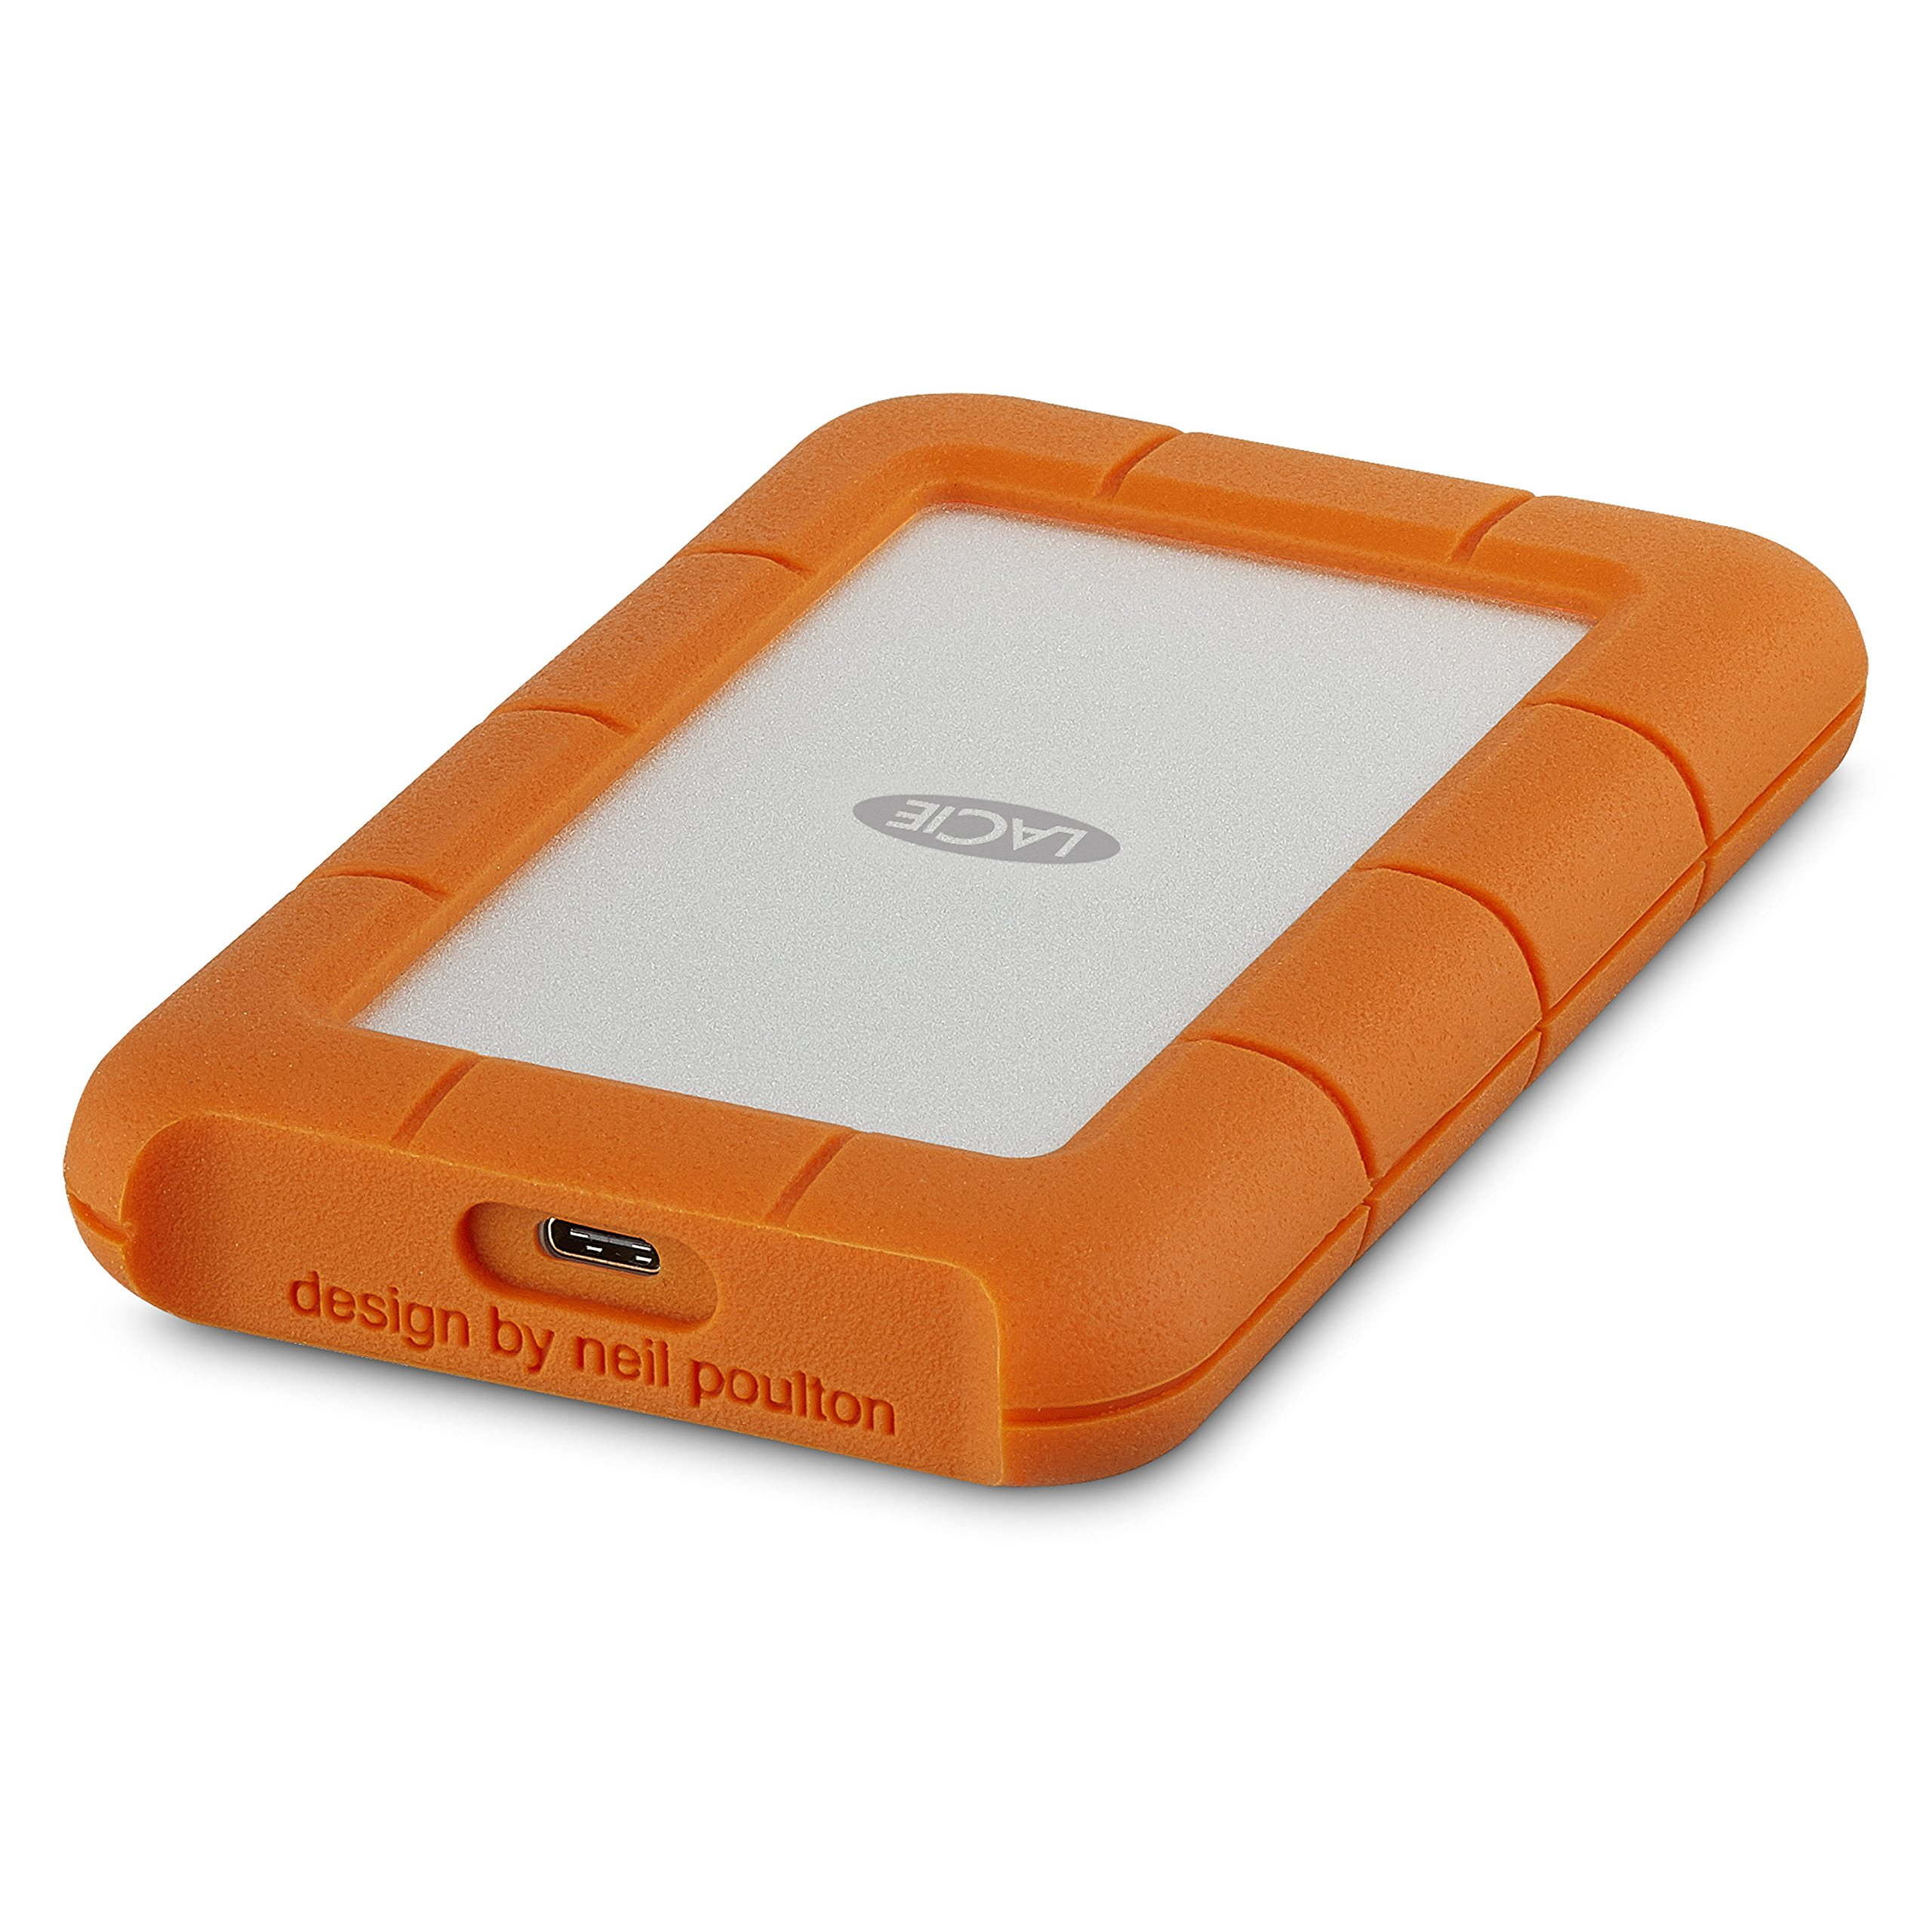 LaCie Rugged USB-C 2TB External Hard Drive Portable HDD - USB 3.0 compatible, Drop Shock Dust Rain Resistant, for Mac and PC Computer Desktop Workstation Laptop, 1 Month Adobe CC (STFR2000800)